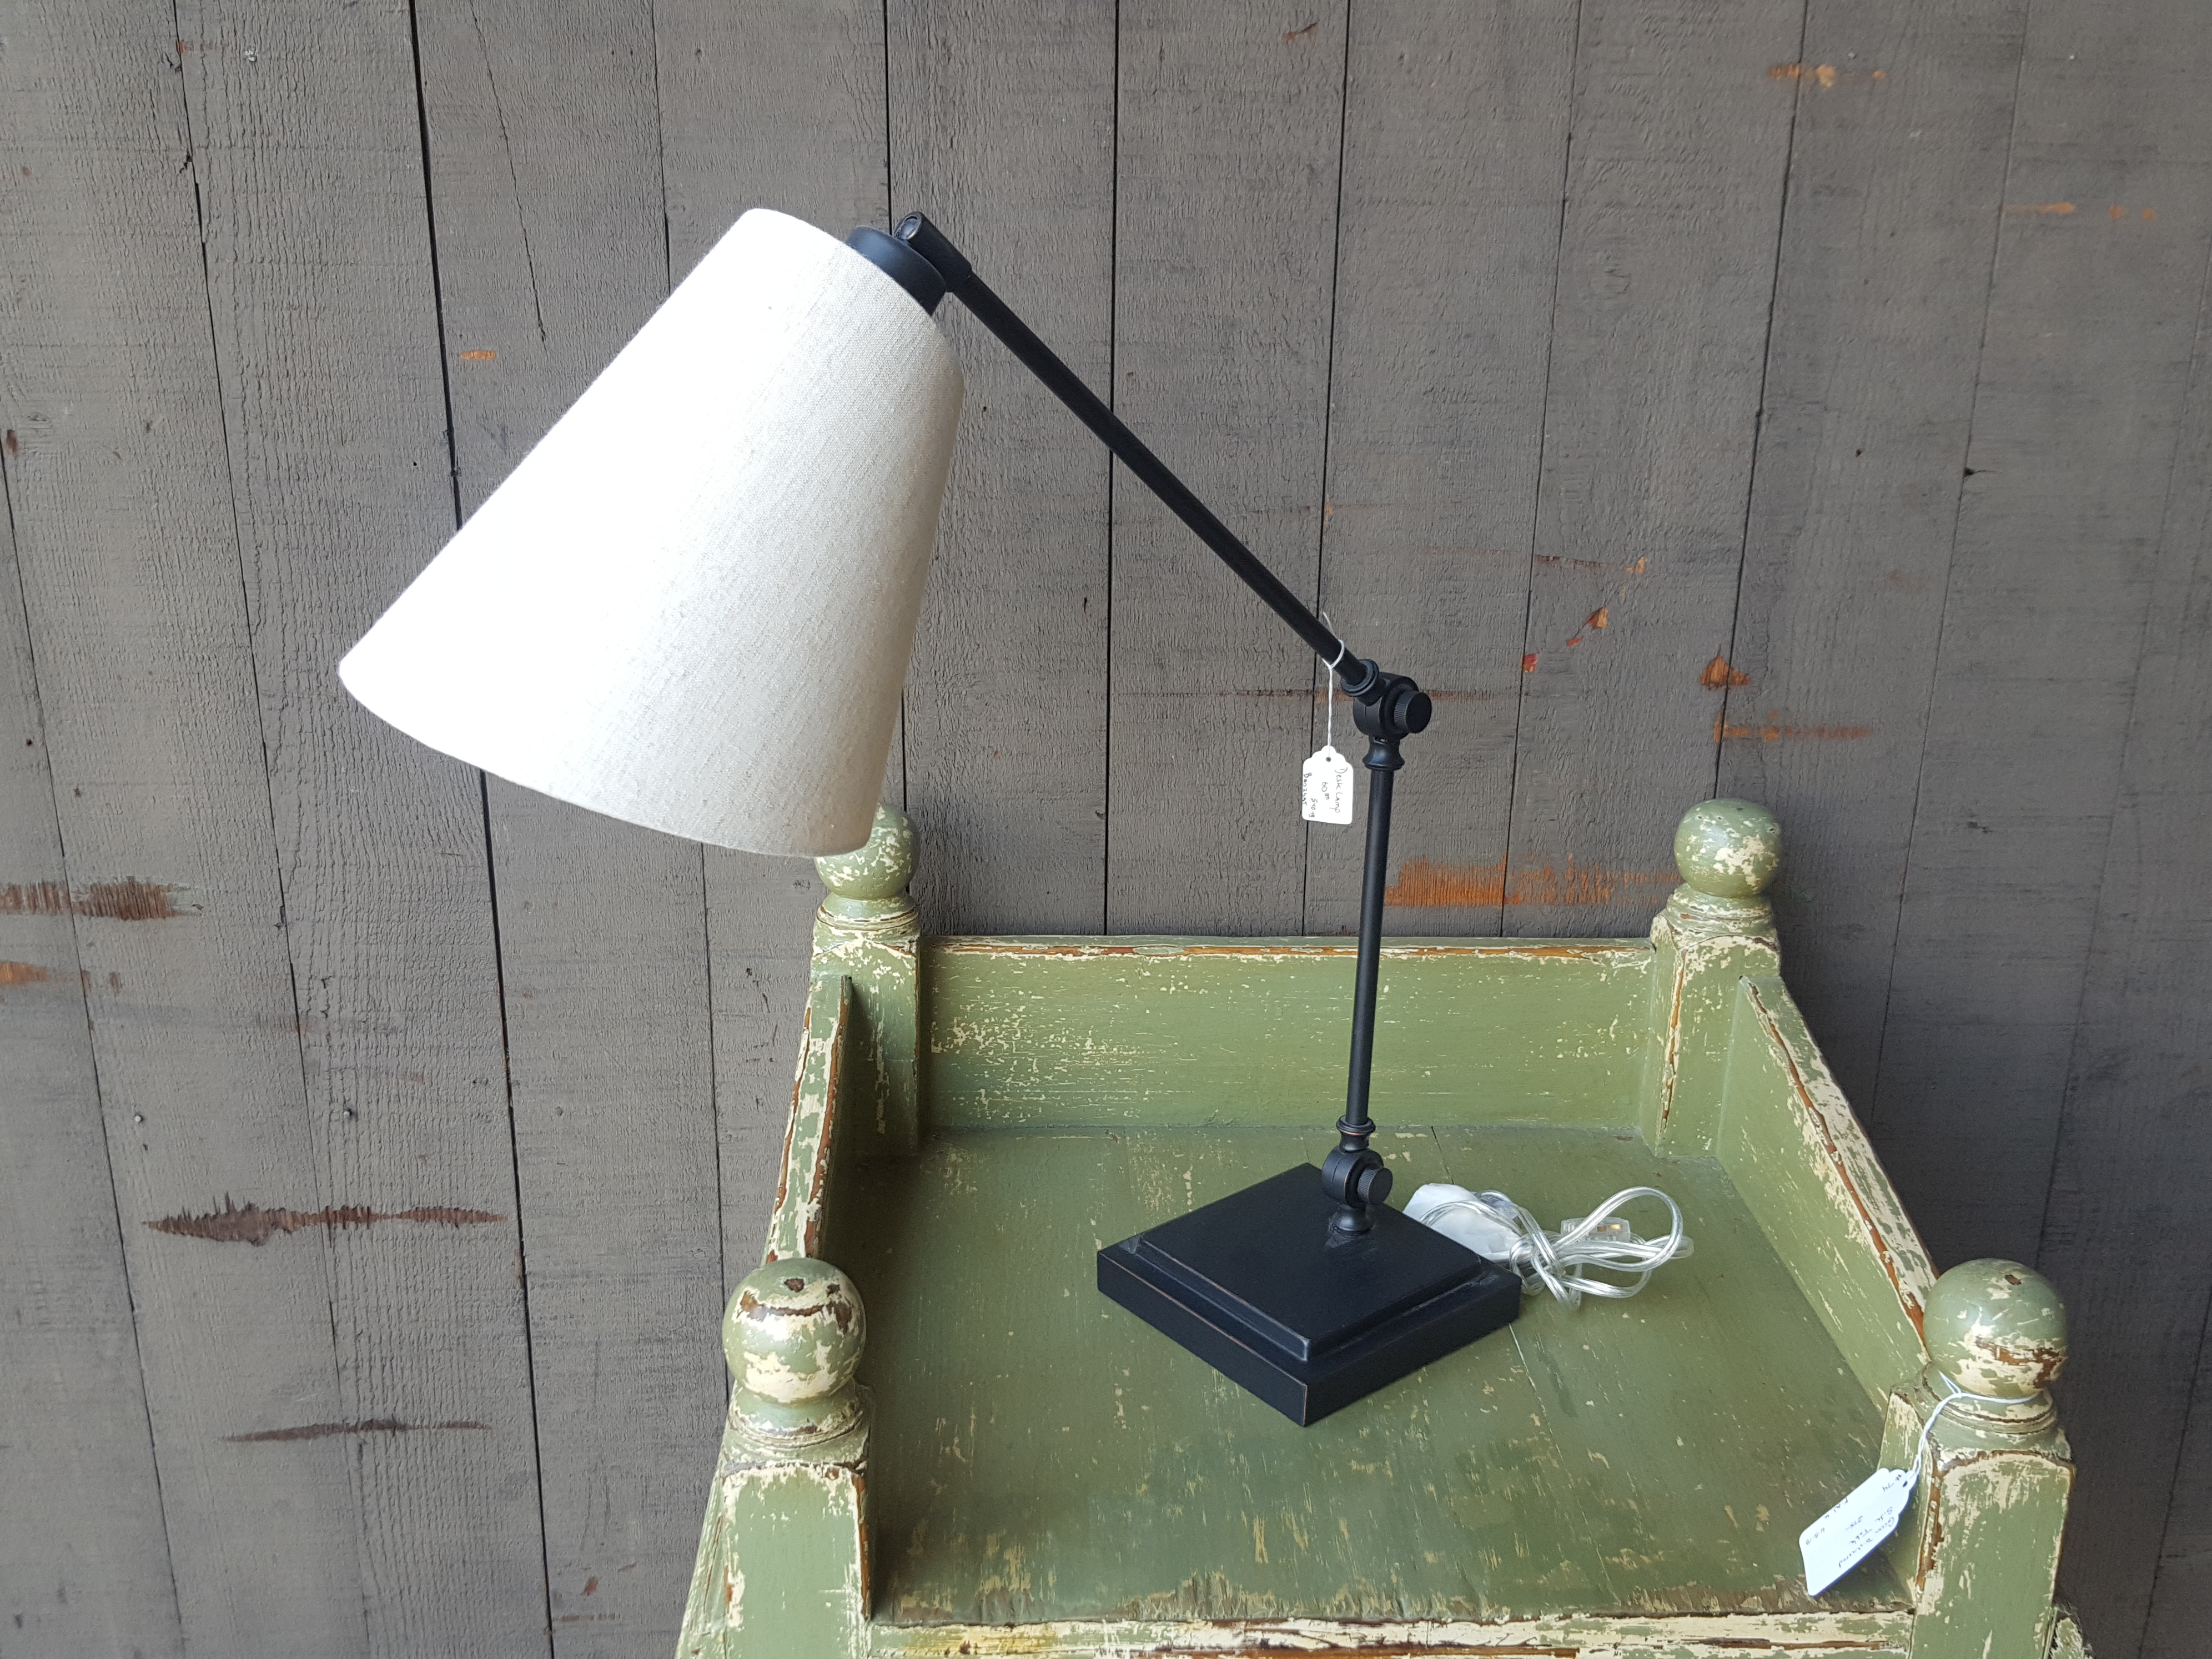 Great mid century style desk lamp with Lighting, Lamps Price: $50.00